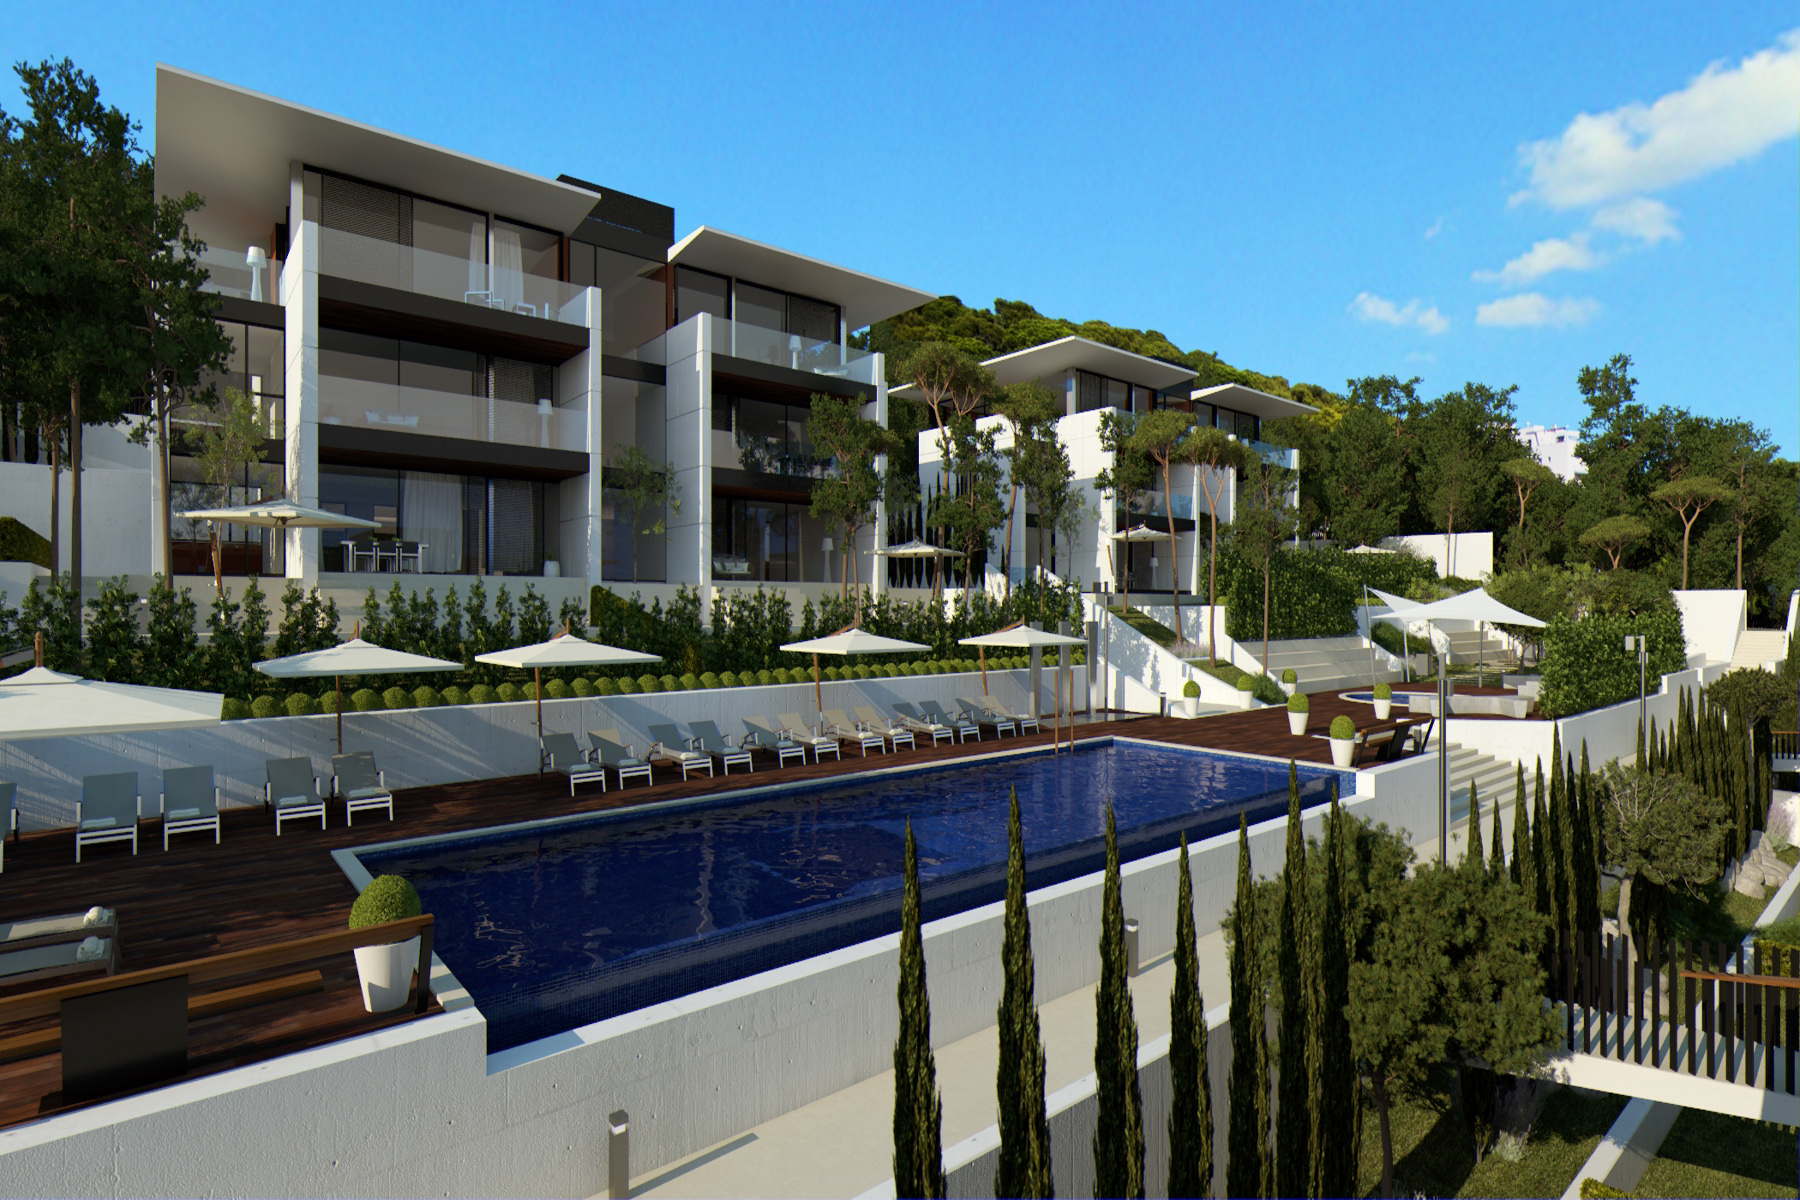 Apartment for Sale at First floor with sea view in a new exclusive development Playa De Aro, Costa Brava, 17250 Spain